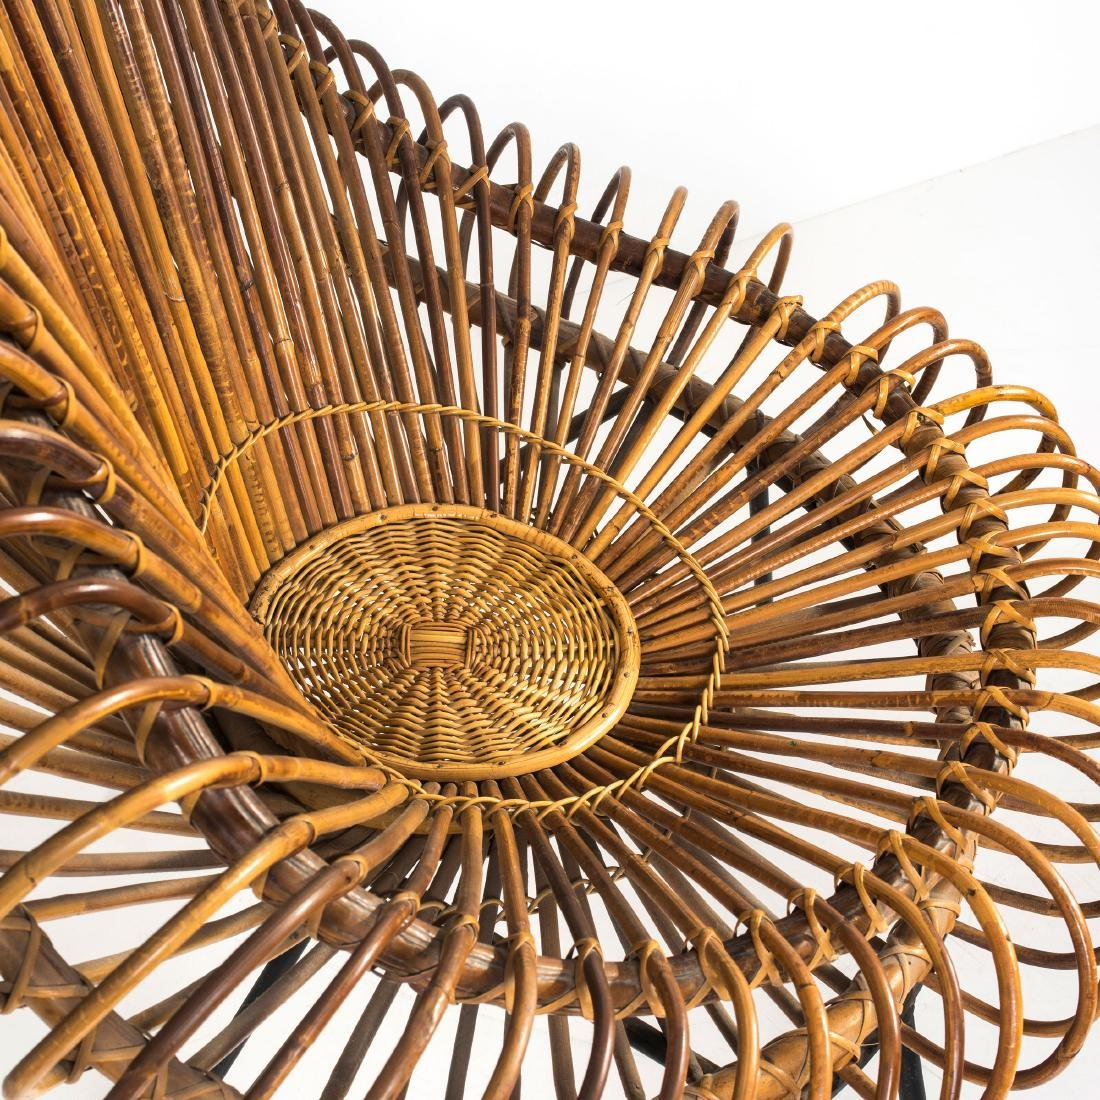 Wicker chair and ottoman, c. 1955 - 2